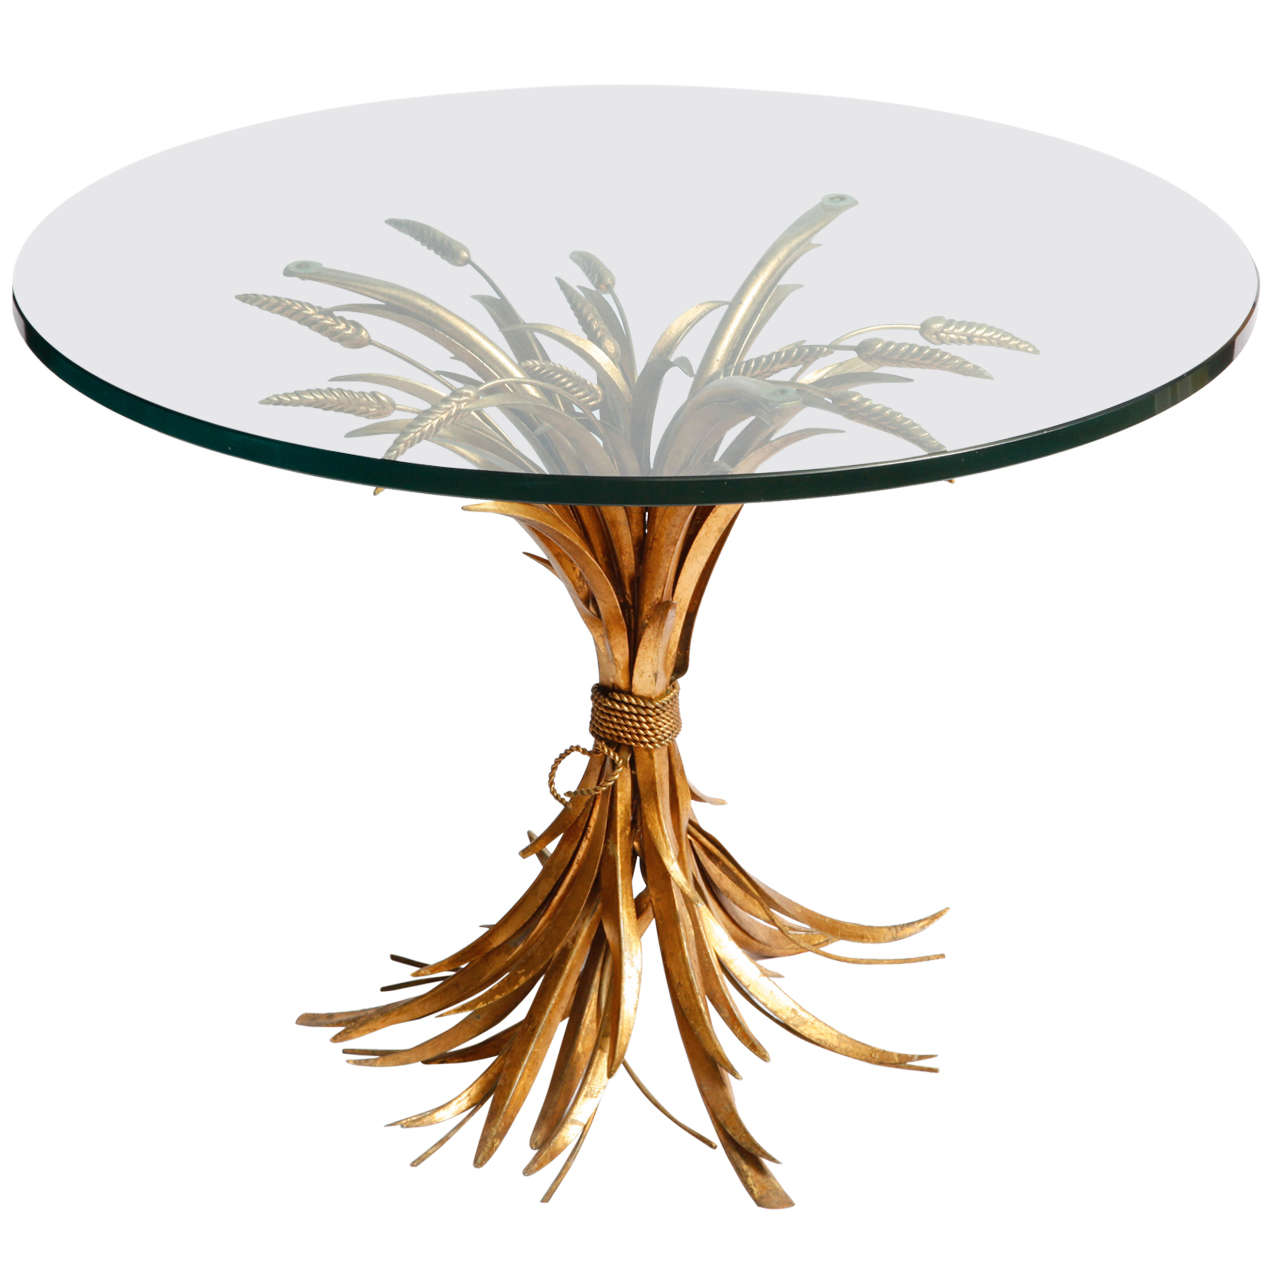 Wheat Table From Coco Chanel At 1stdibs